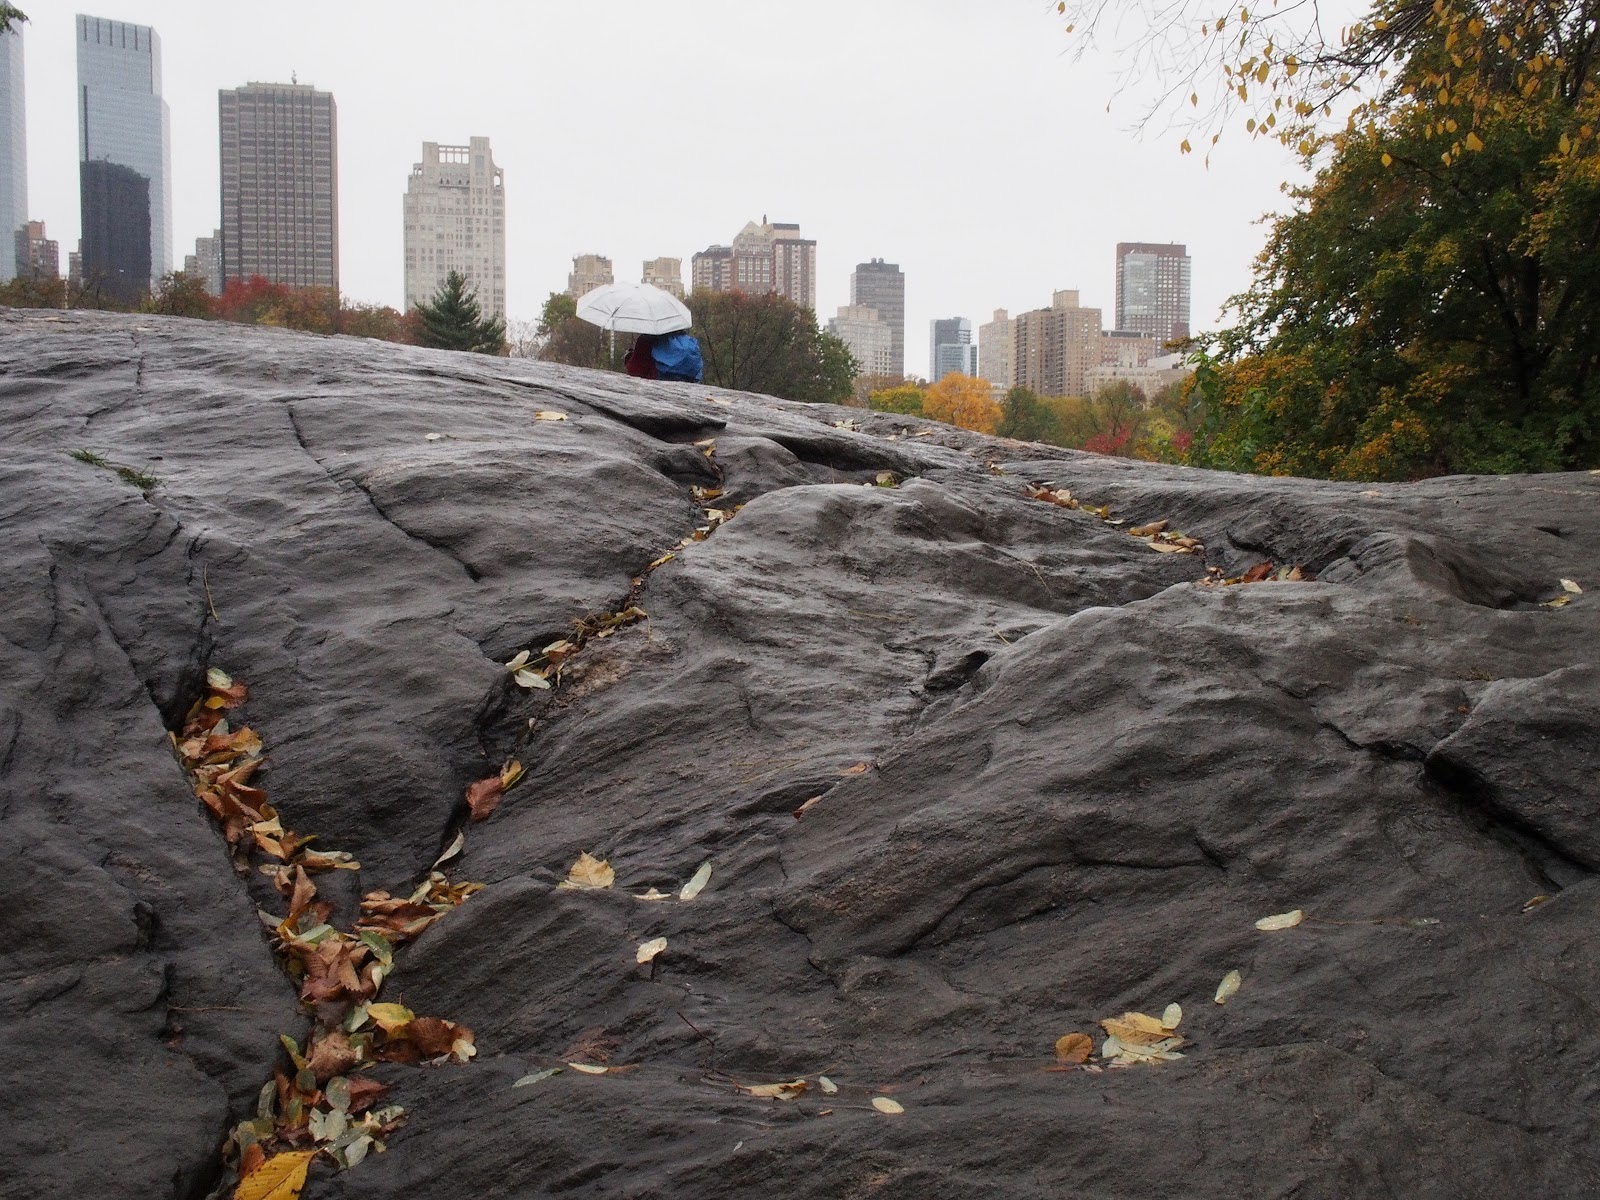 Lone Umbrella, #umbrella #loneumbrella #rocks #centralpark #rainyday #nyc 2014